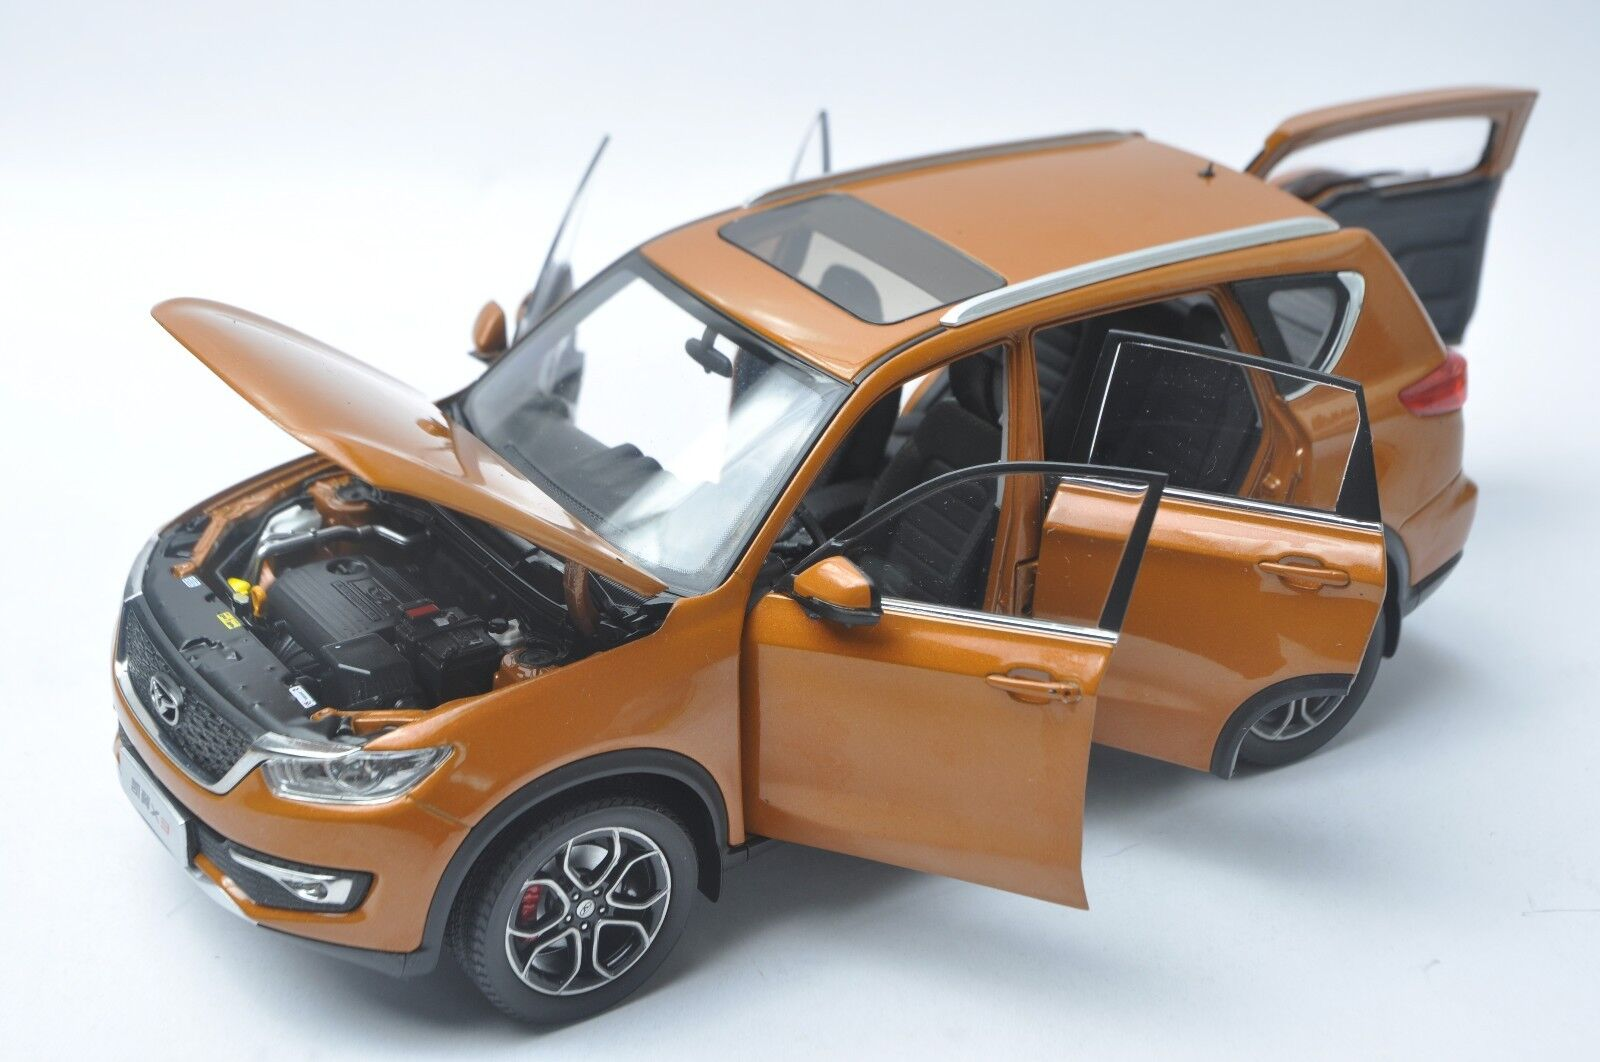 Dongfeng Dongfeng Dongfeng Kaiyi X3 car model in scale 1 18 orange d0a814